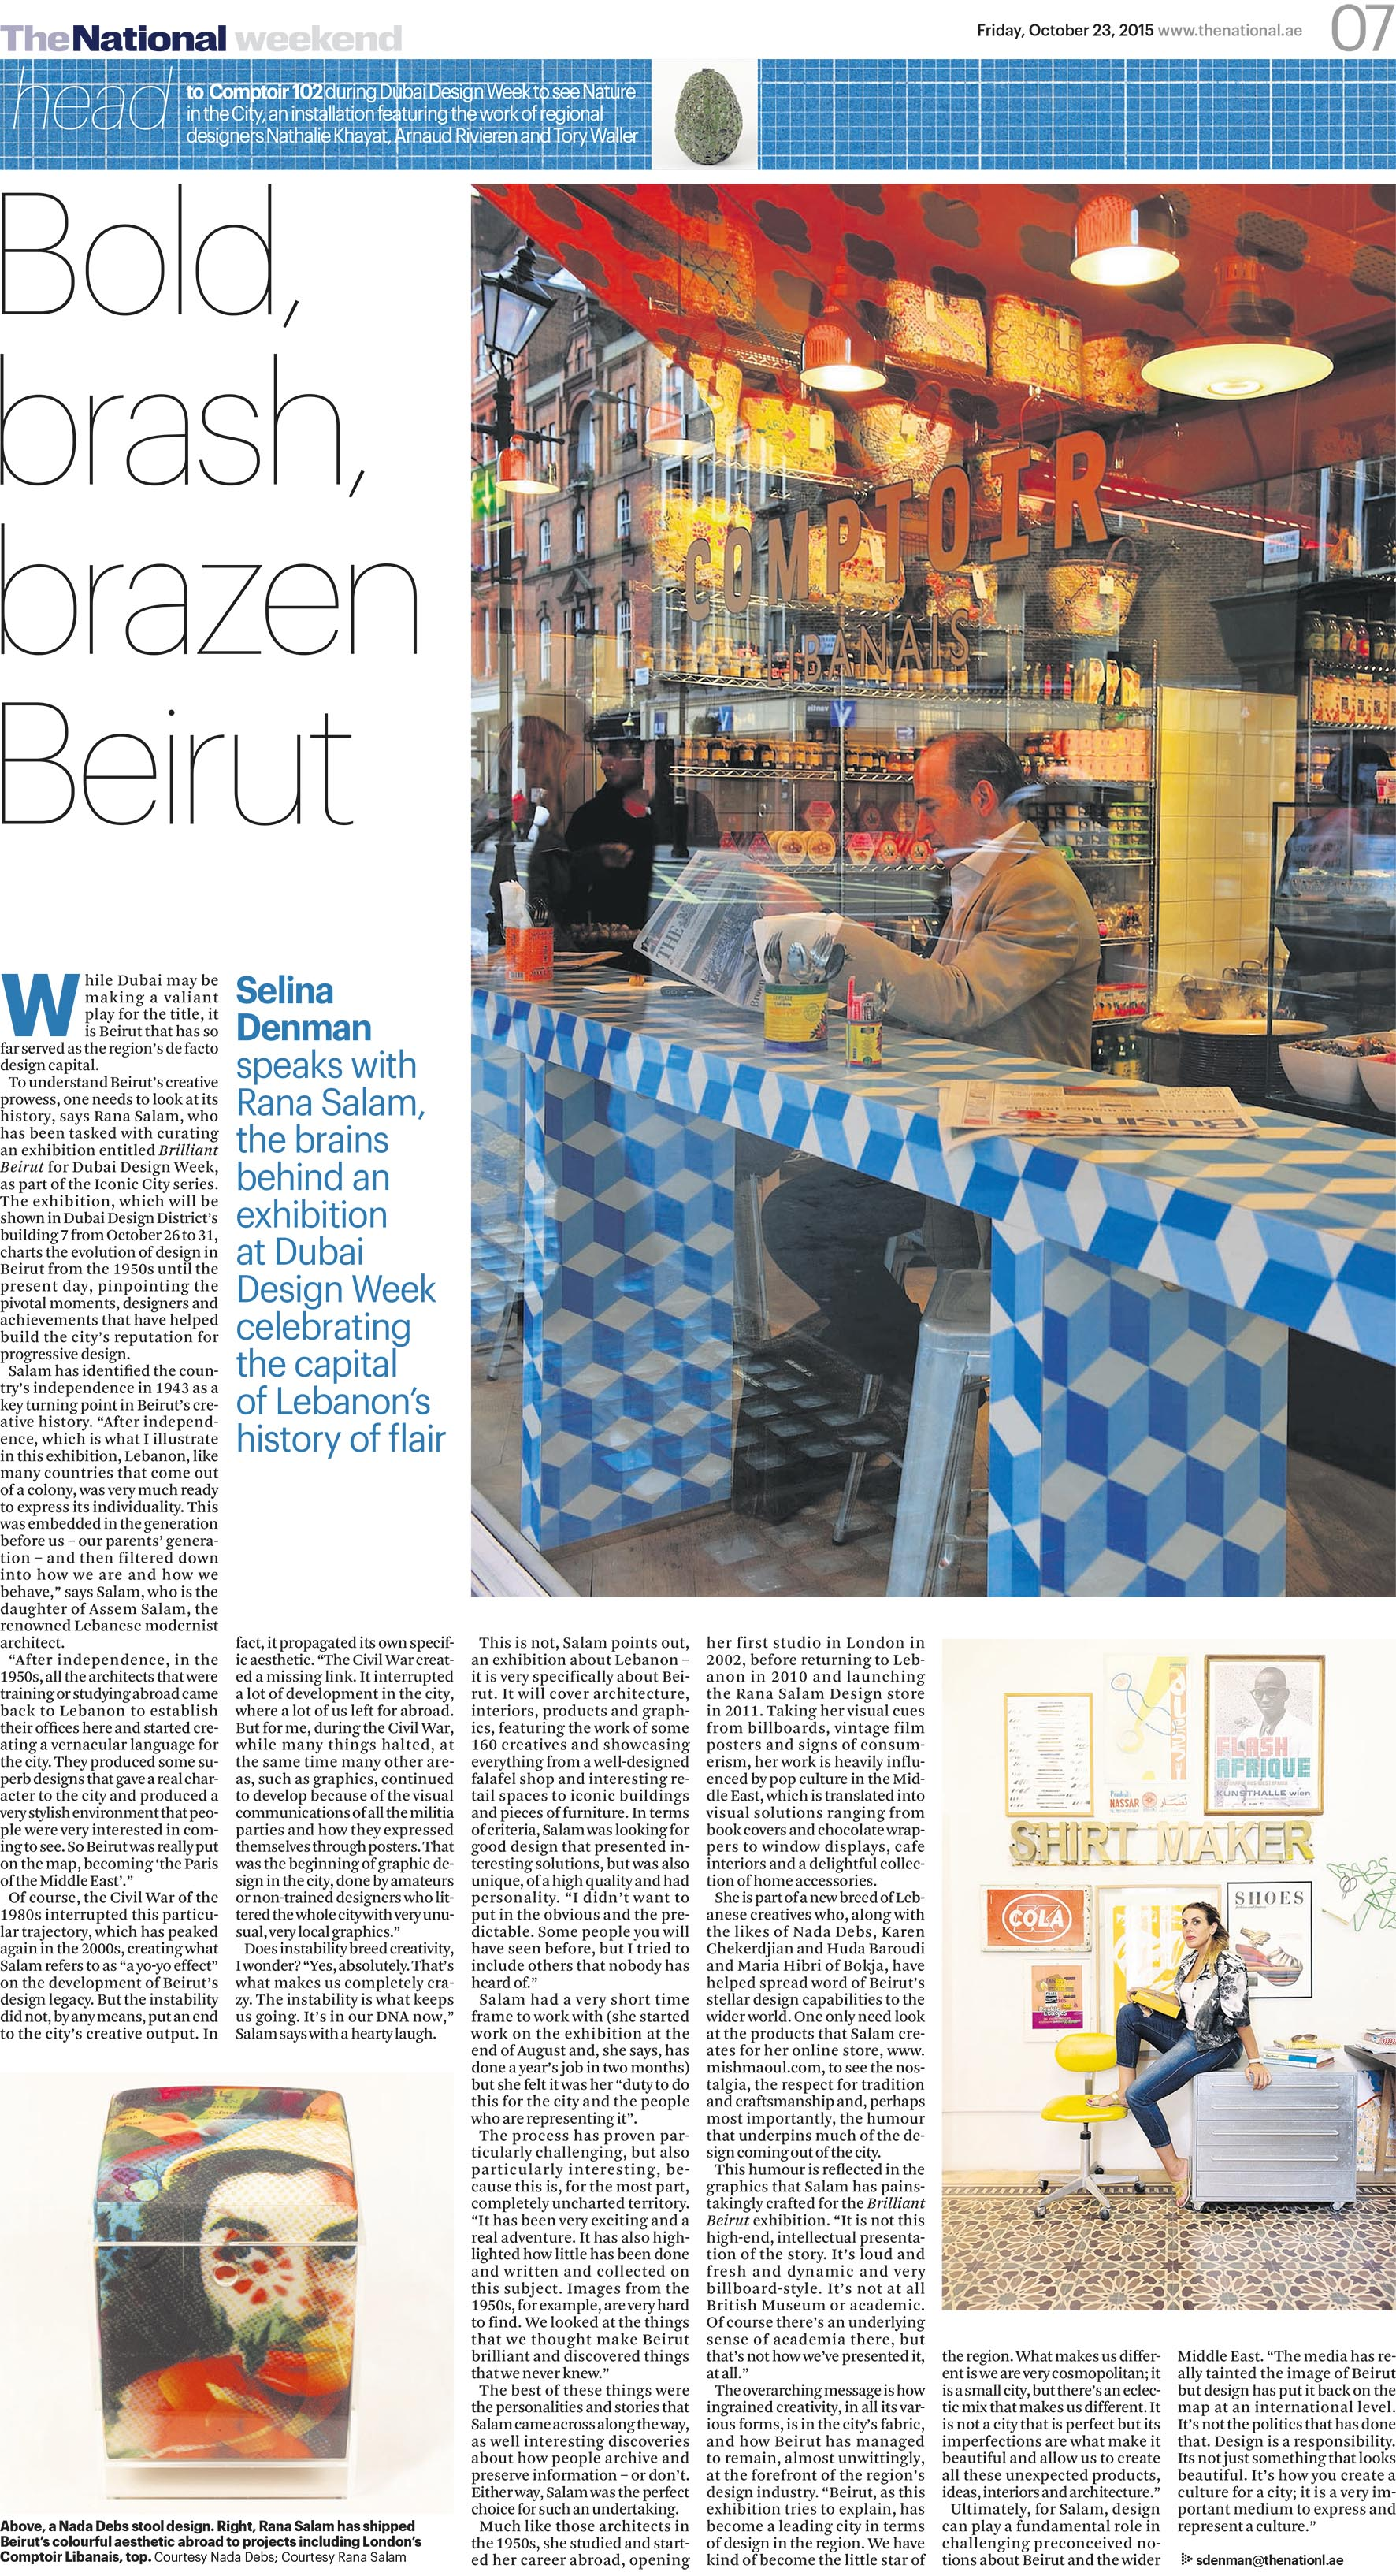 The National_Weekend_Bold brash brazen Beirut 23.10.2015.jpg